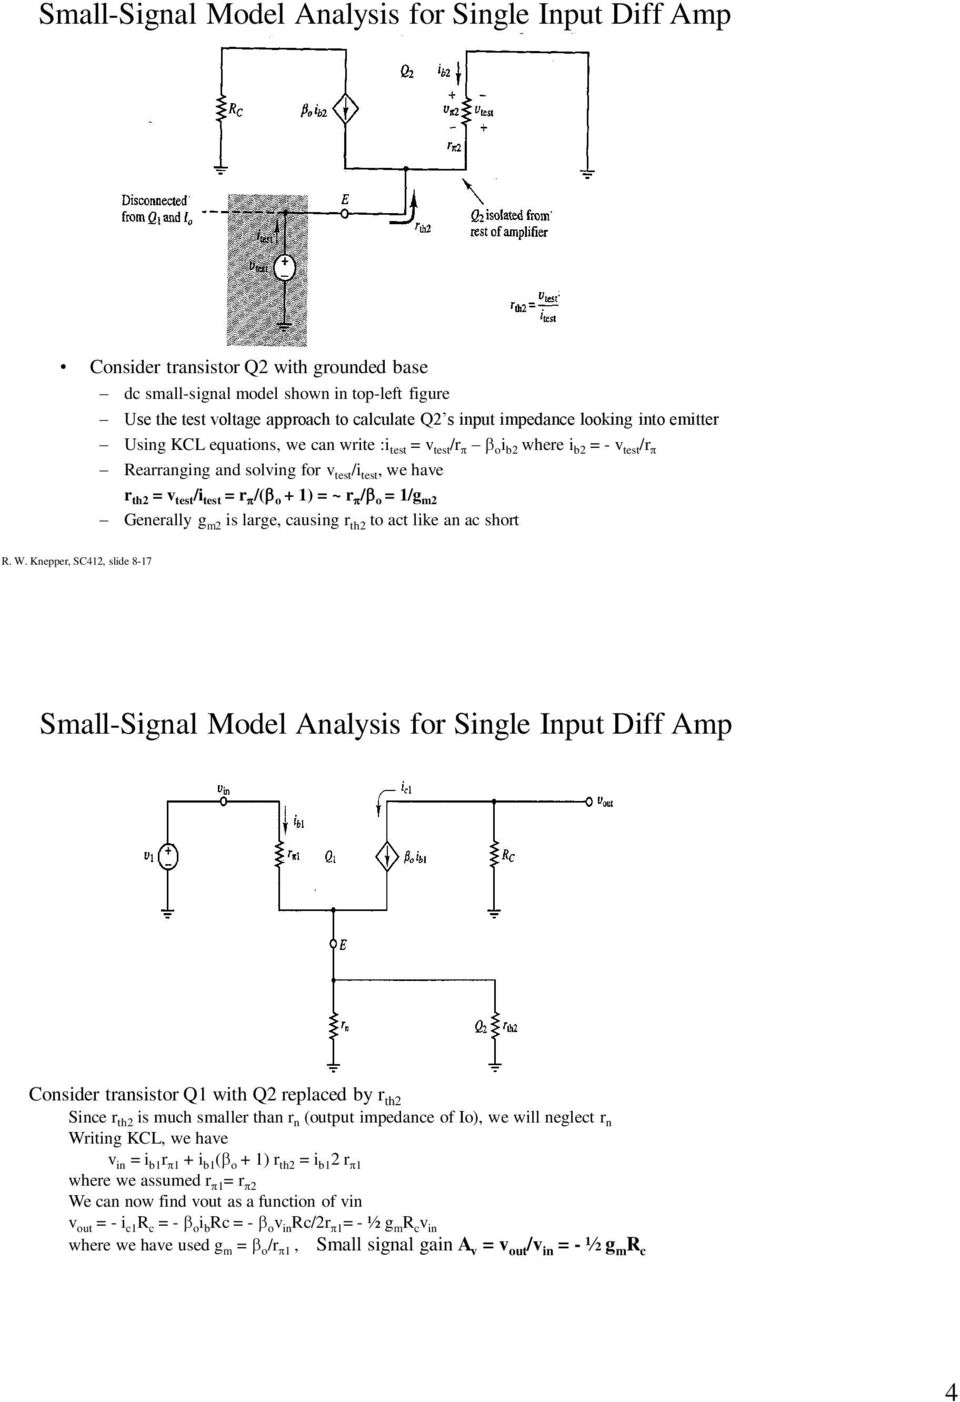 Differential Amplifiers Chapter 8 In Horenstein Pdf Calculate Output Impedance Of Transistor Electronics And Electrical O 1 R G M2 Generally